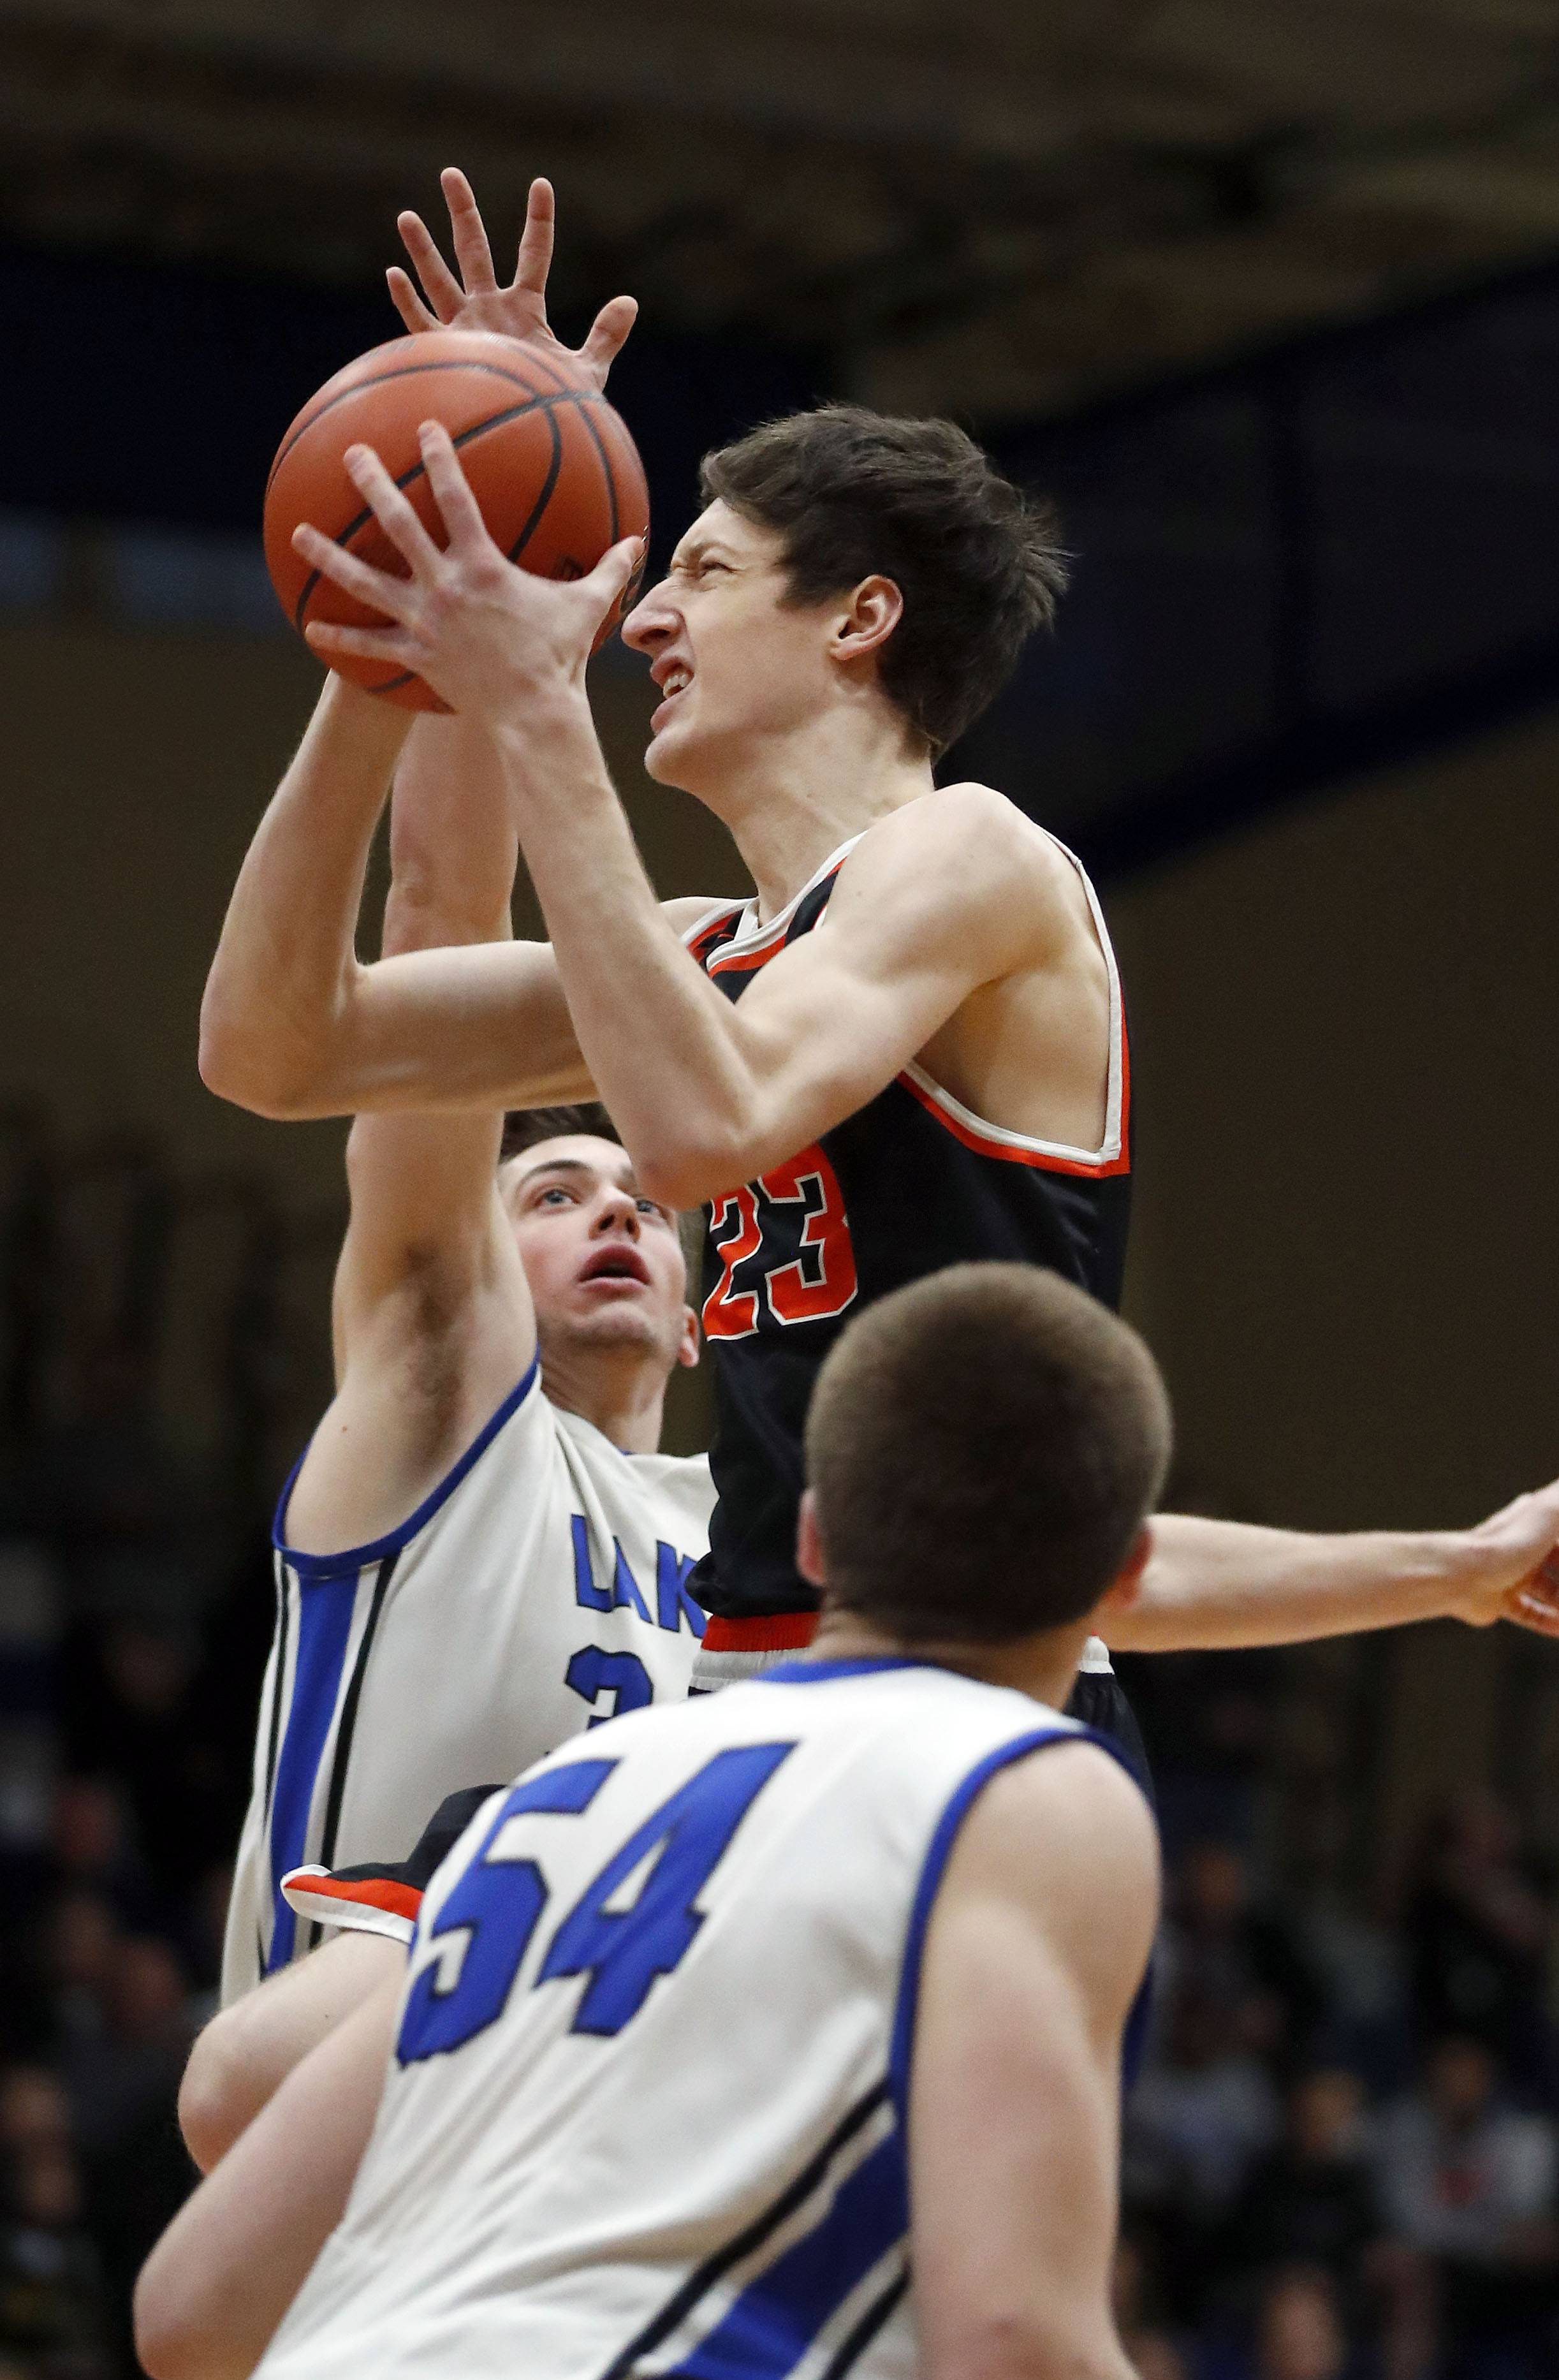 Libertyville's Drew Peterson, right, drives on Lake Zurich's Ryan Kutsor during the Class 4A sectional semifinal at Lake Zurich High School on Tuesday.